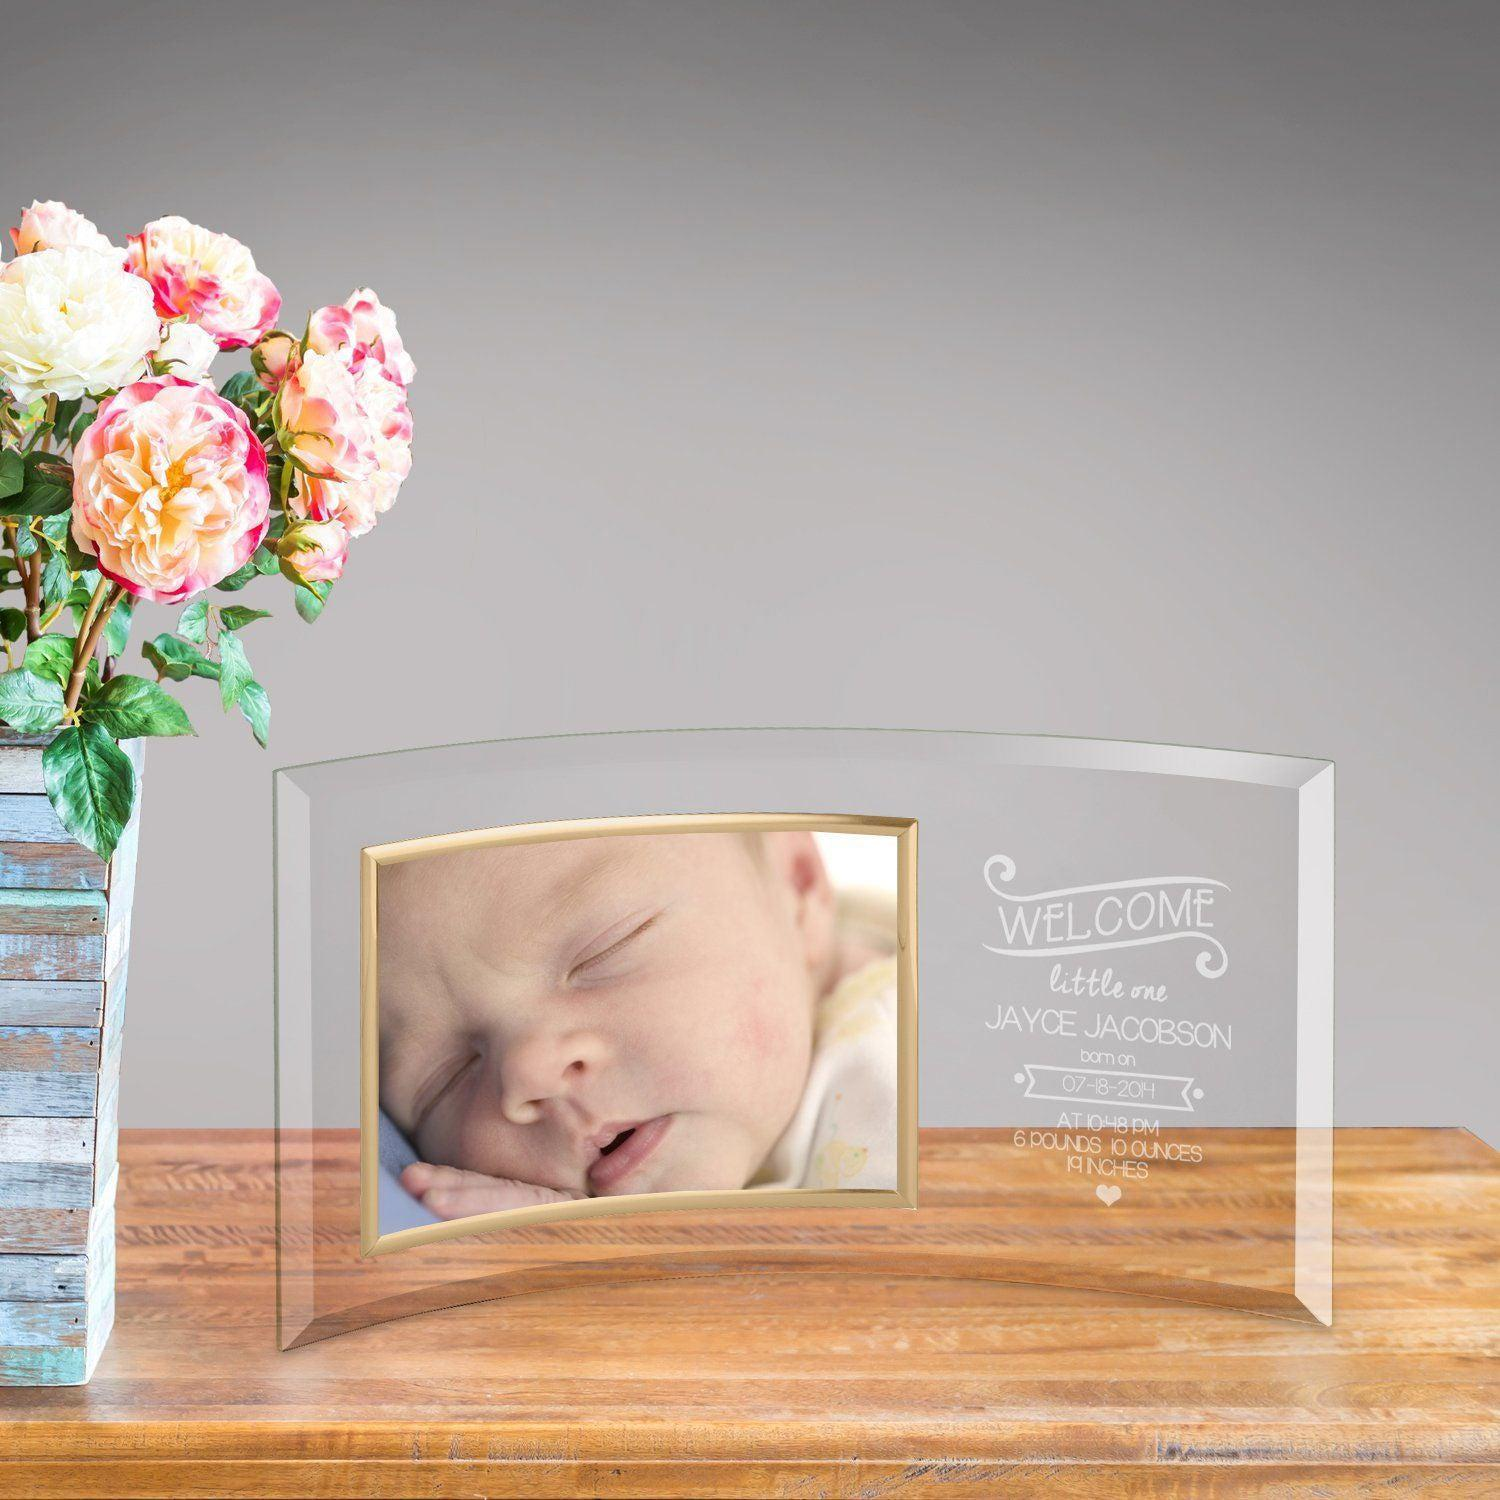 Personalized Welcome Baby Glass Photo Frame - Exclusively By